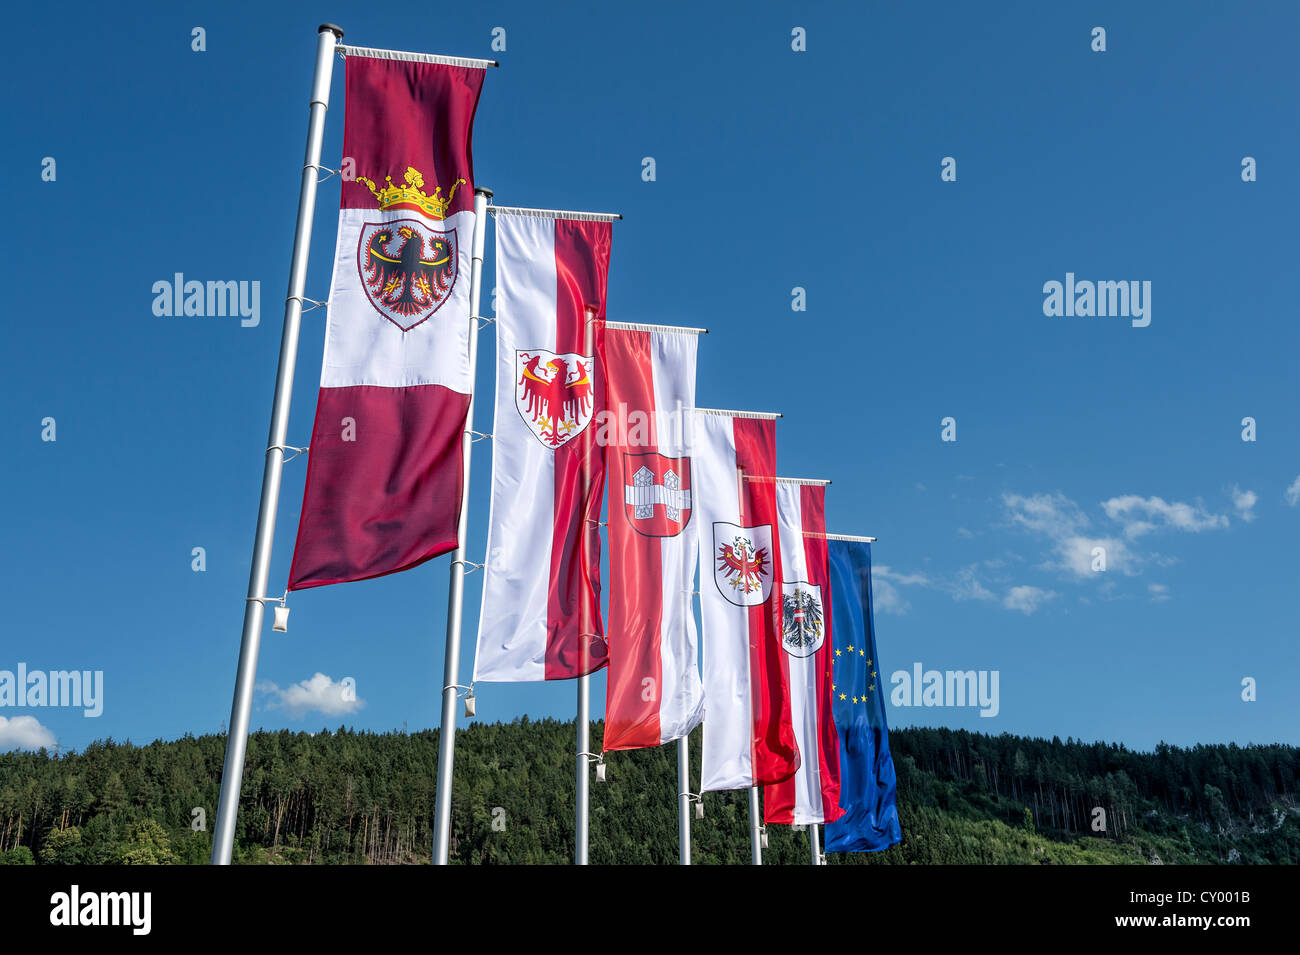 Flags on the forecourt of the 'Tirol Panorama' Museum at Bergisel, Innsbruck, Tyrol, Austria, Europe - Stock Image